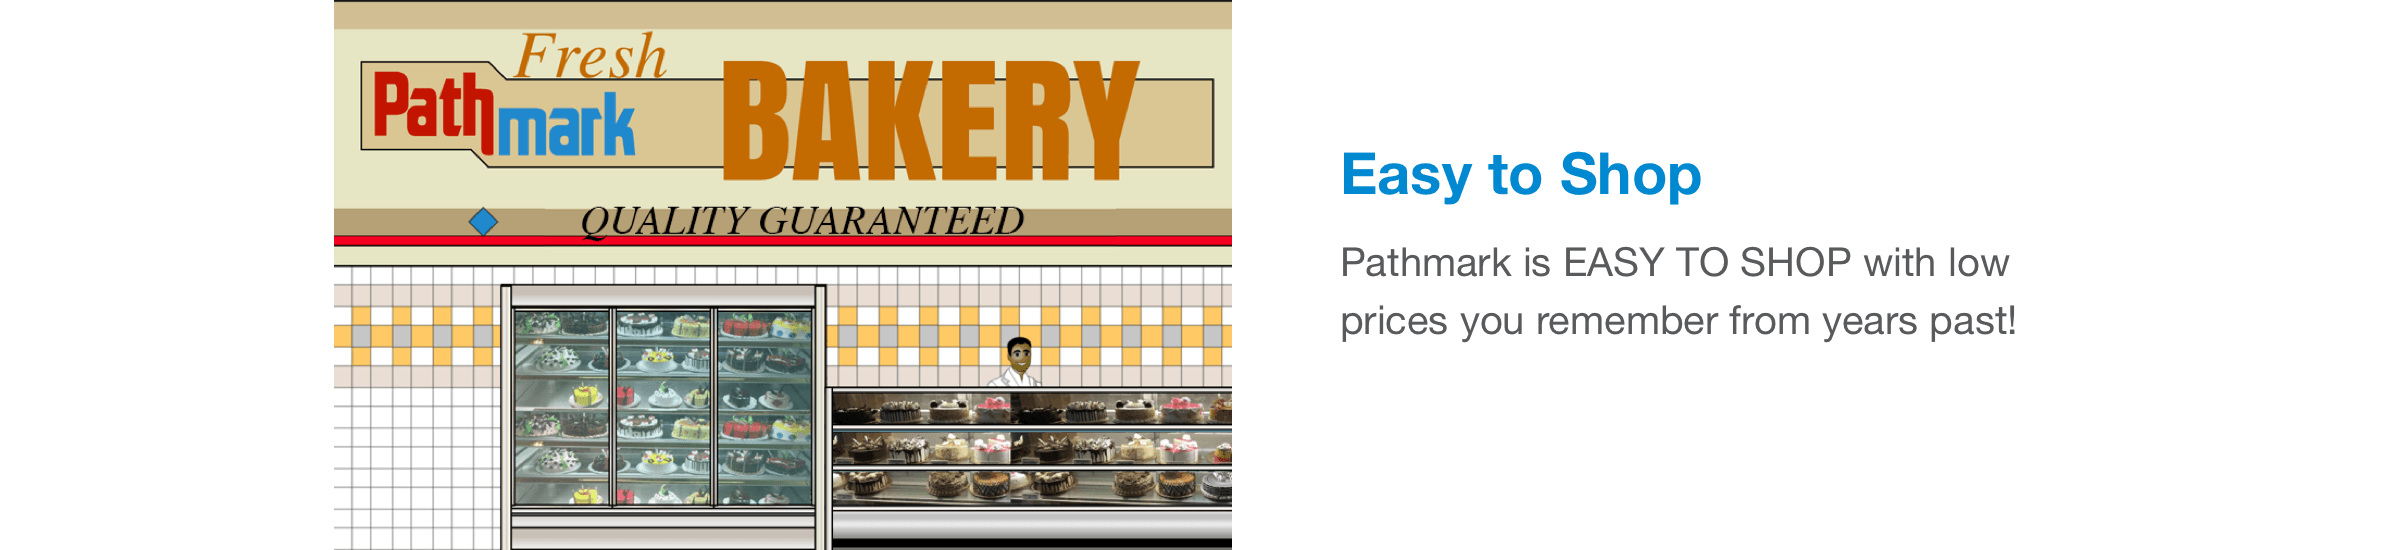 Pathmark is EASY TO SHOP with low prices you remember from years past!